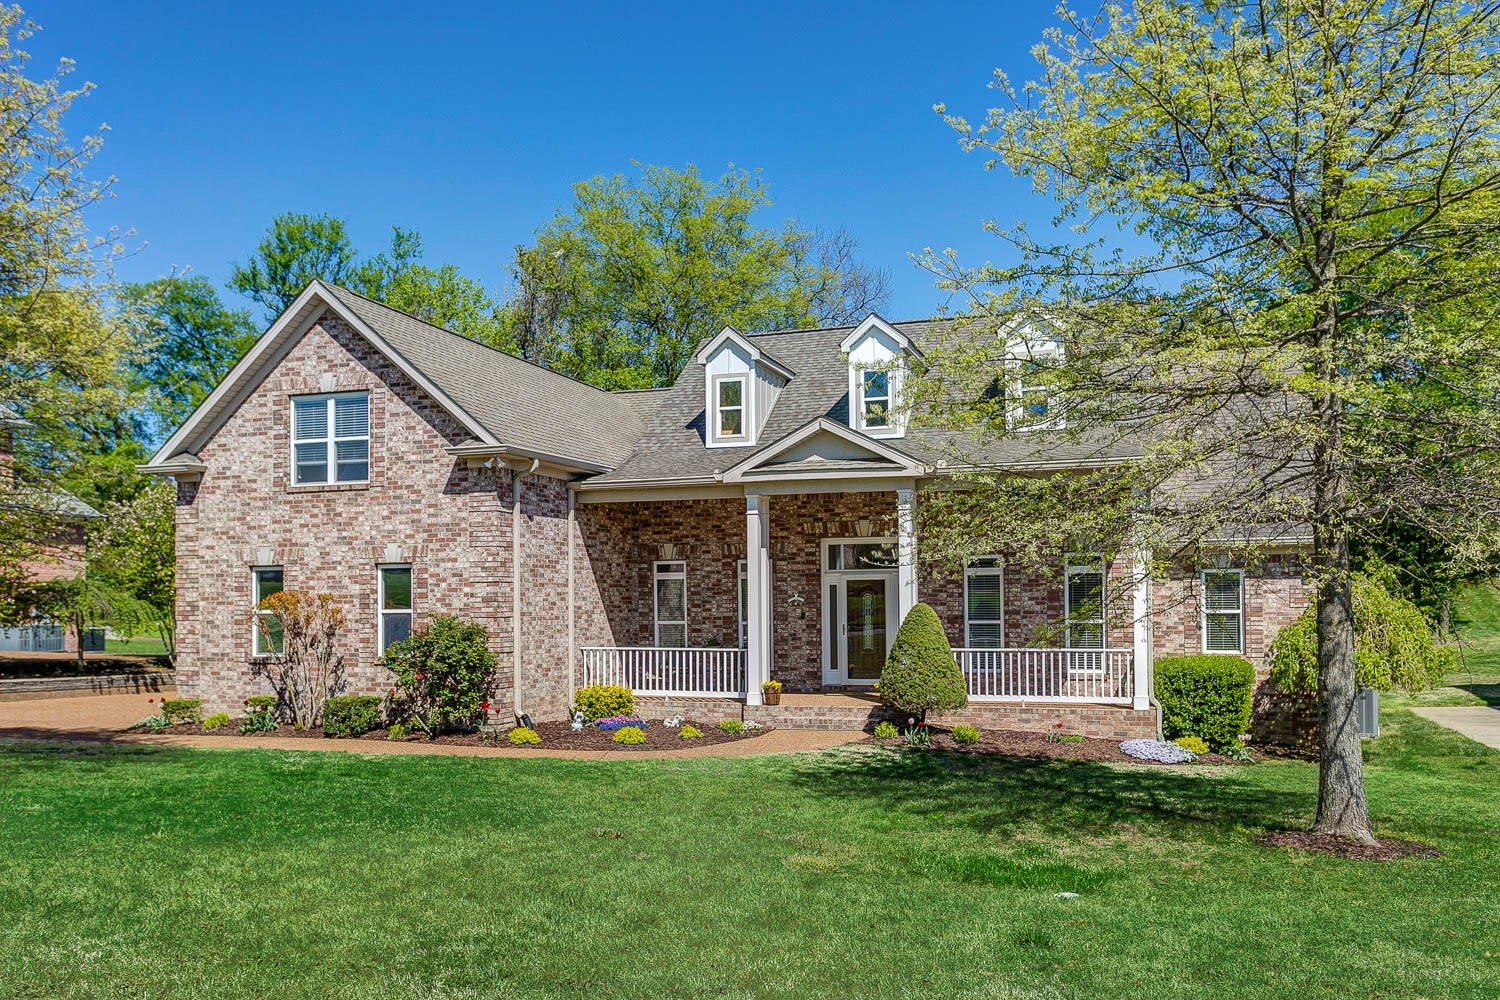 1420 Station Four Ln, Old Hickory, TN 37138 - Old Hickory, TN real estate listing